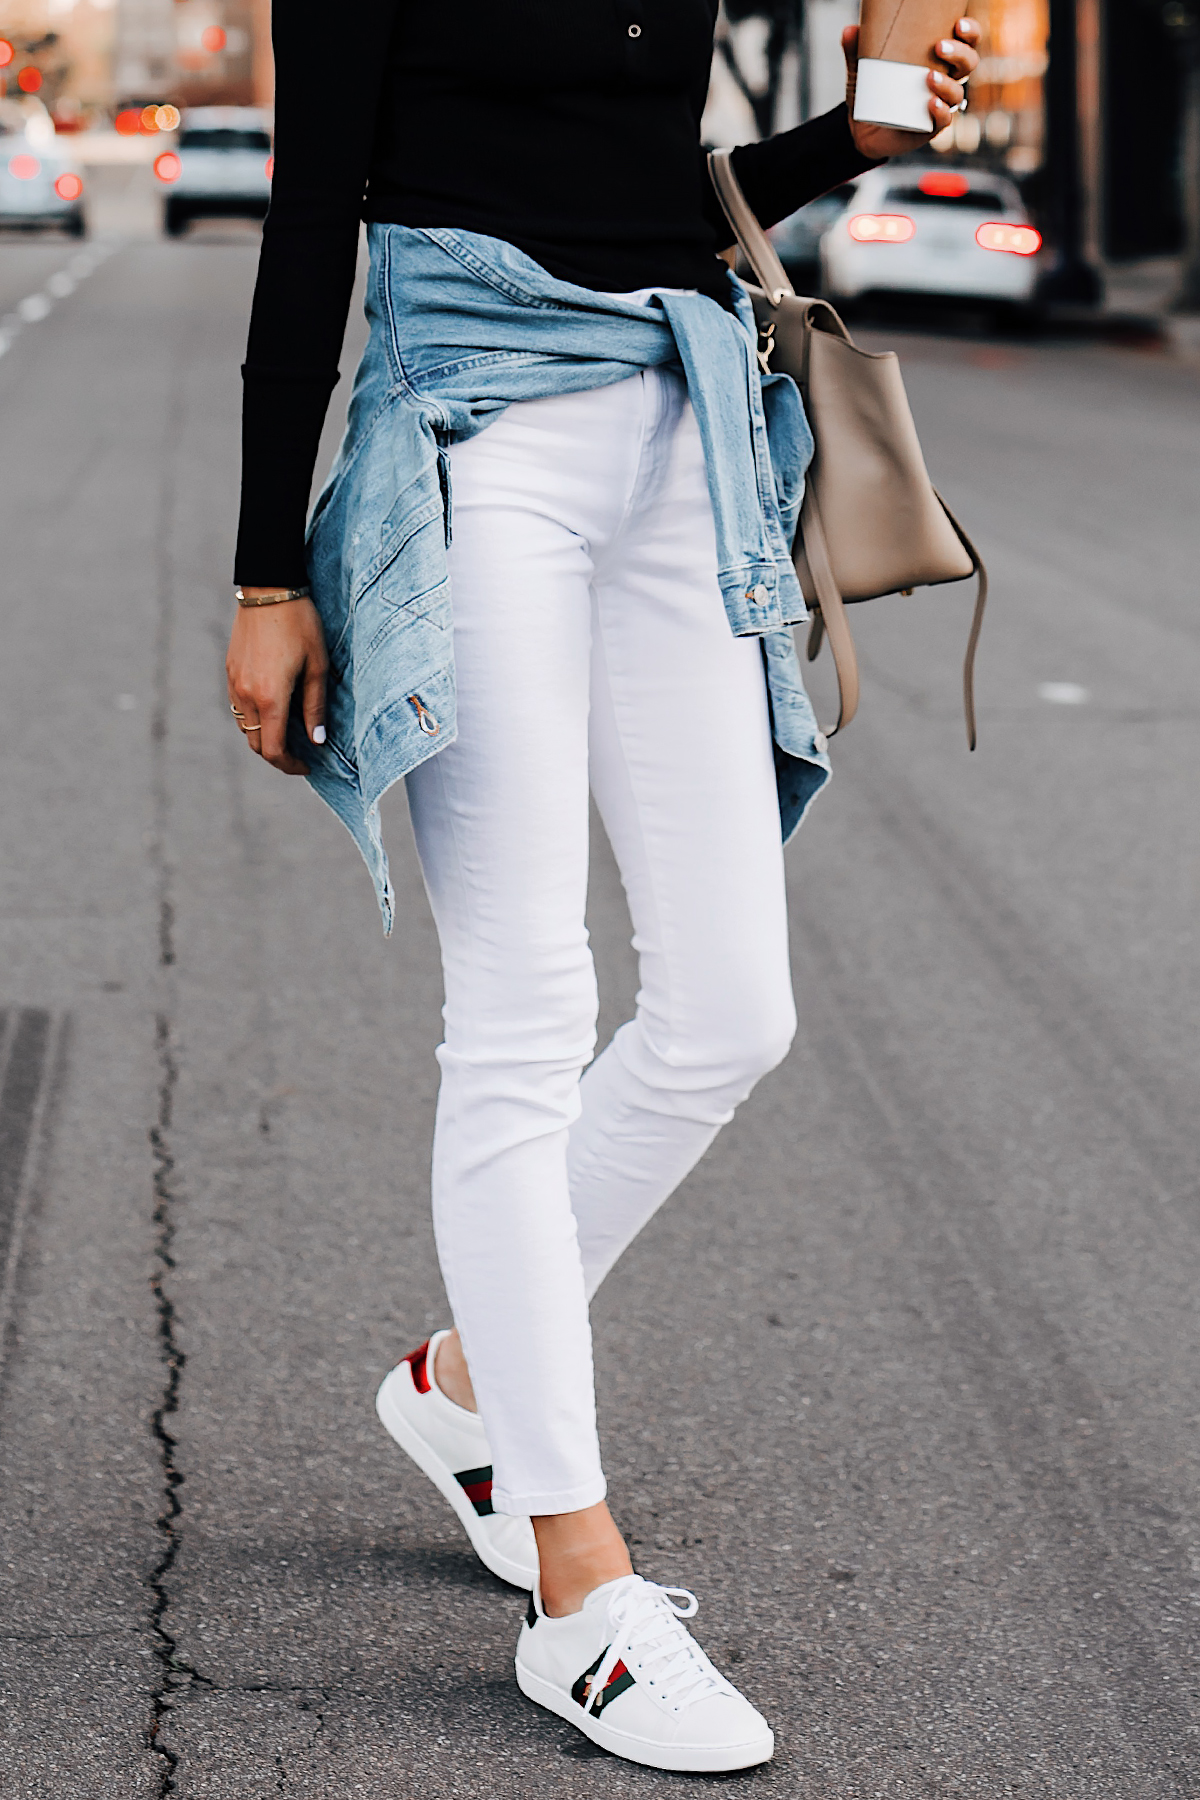 Woman Wearing Black Top Joes Jeans White Skinny Jeans Levis Denim Jacket Gucci Ace Embroidered Sneakers Fashion Jackson San Diego Fashion Blogger Street Style